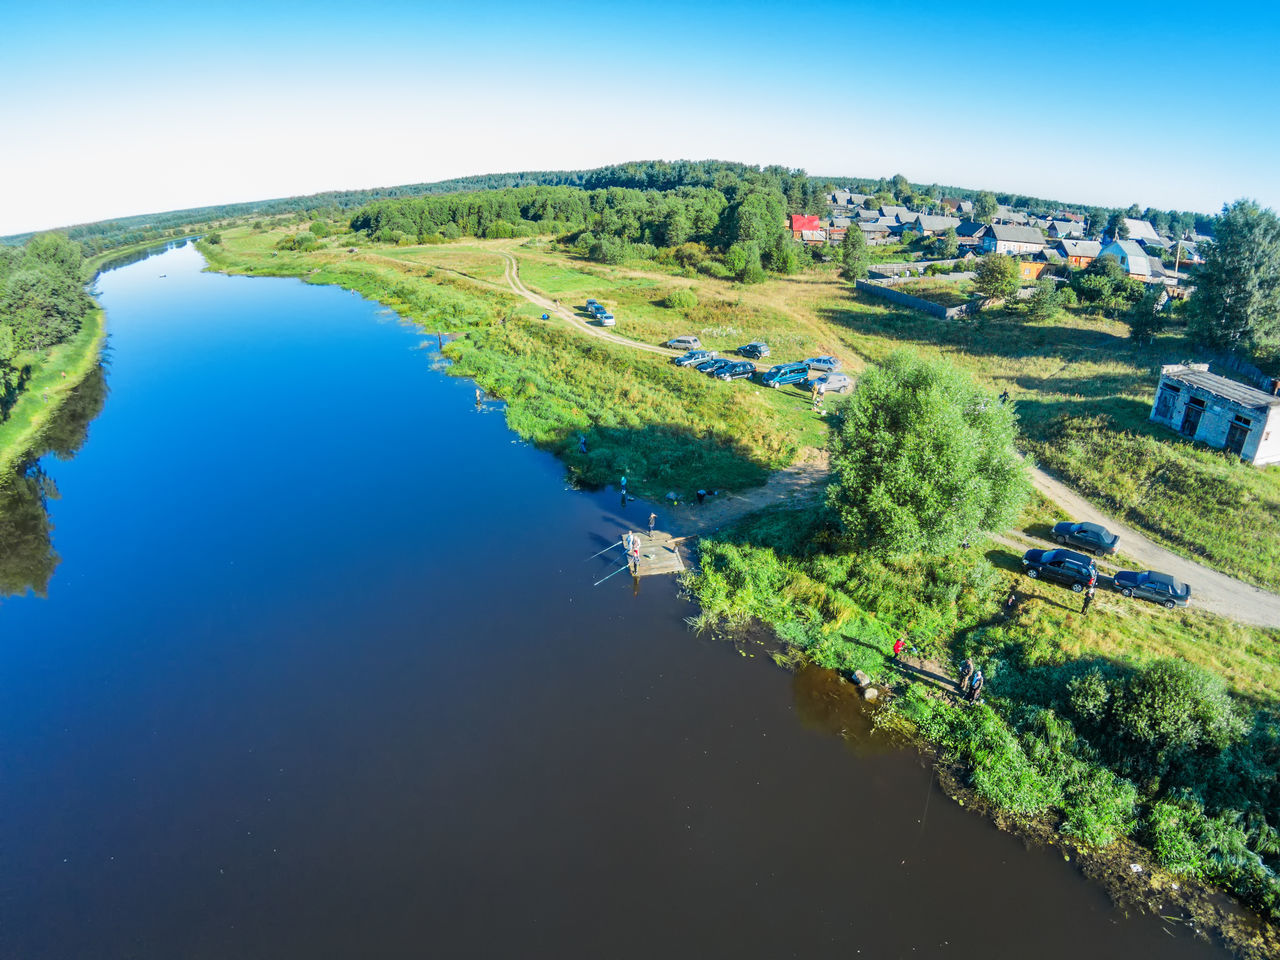 Aerial view of the fishermen in the river Mologa A Bird's Eye View Aerial Aerial View Beauty In Nature Clear Sky Environment Green Color Lake Landscape Mologa Nature Outdoors River Rural Scene Scenics Sky Top Perspective Tourism Tranquility Travel Destinations Tree Urban Skyline Vacations Water